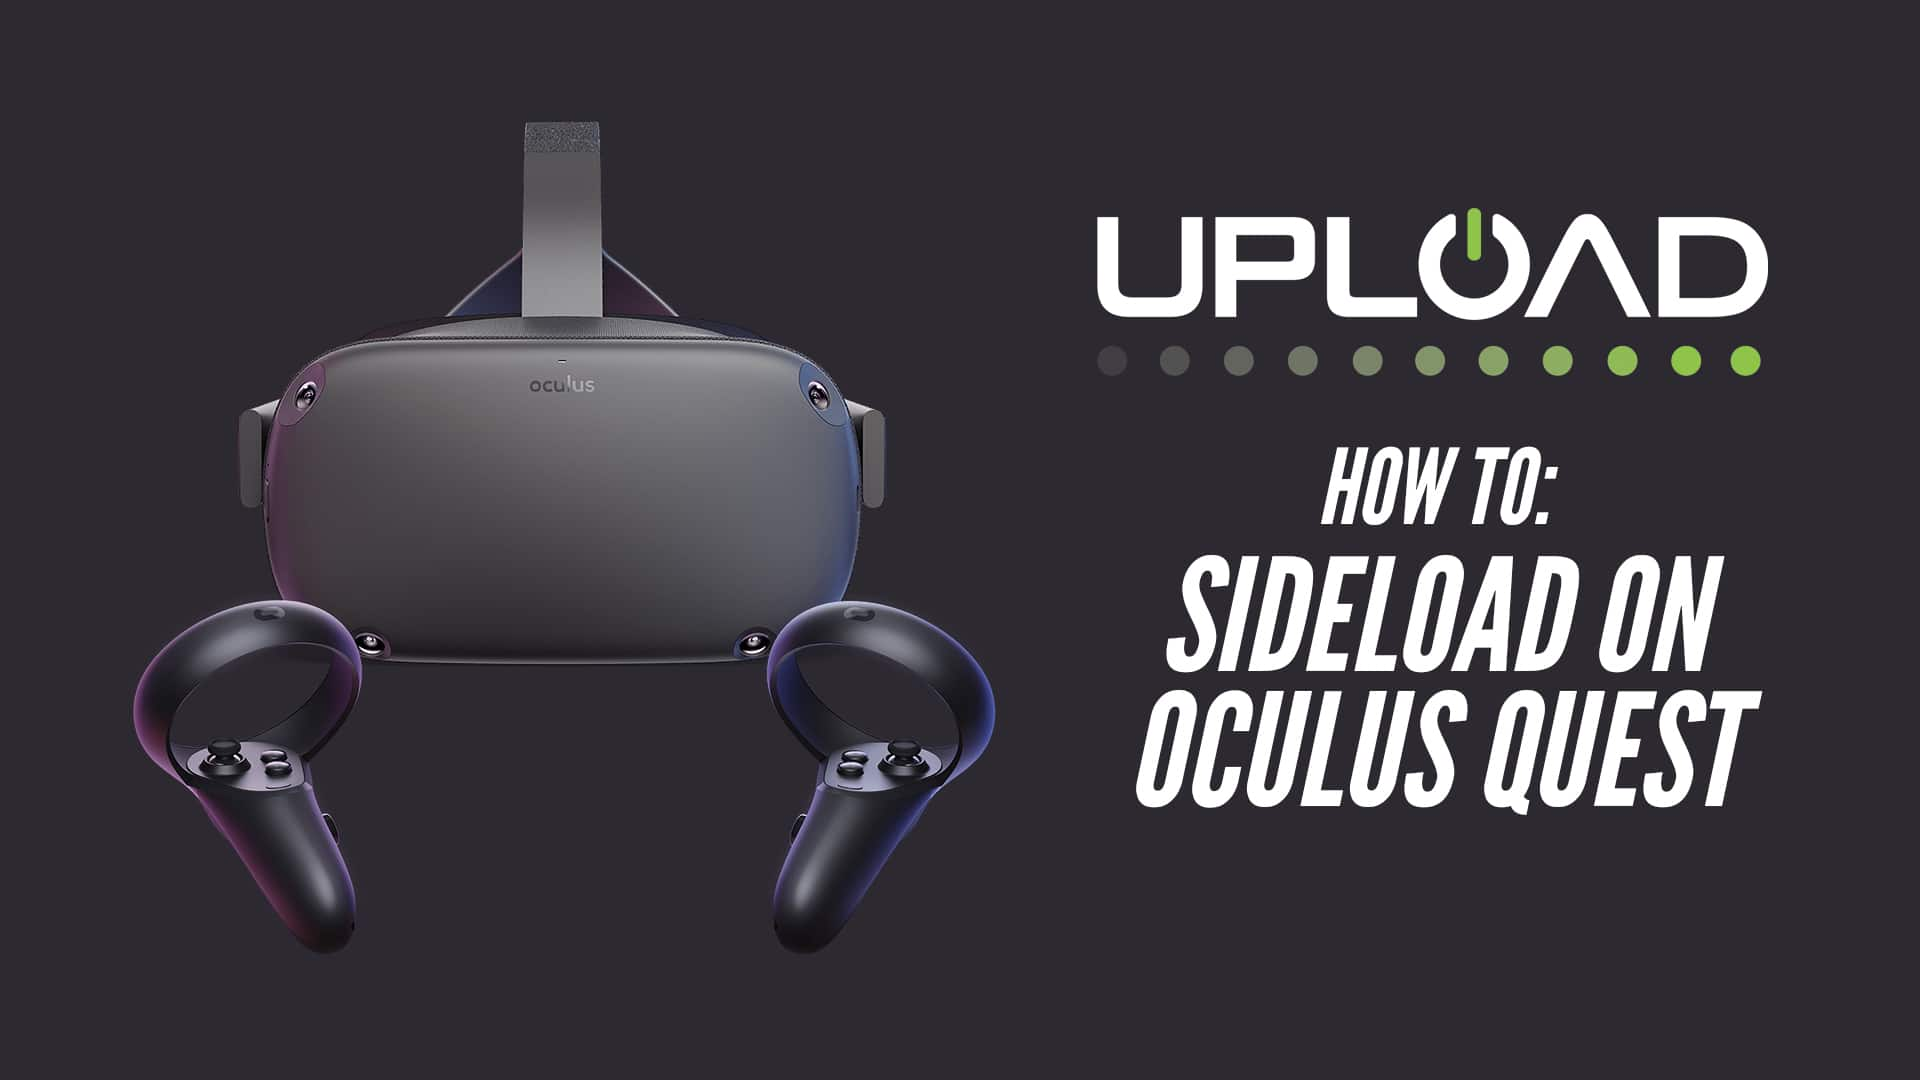 how to sideload on oculus quest uploadvr